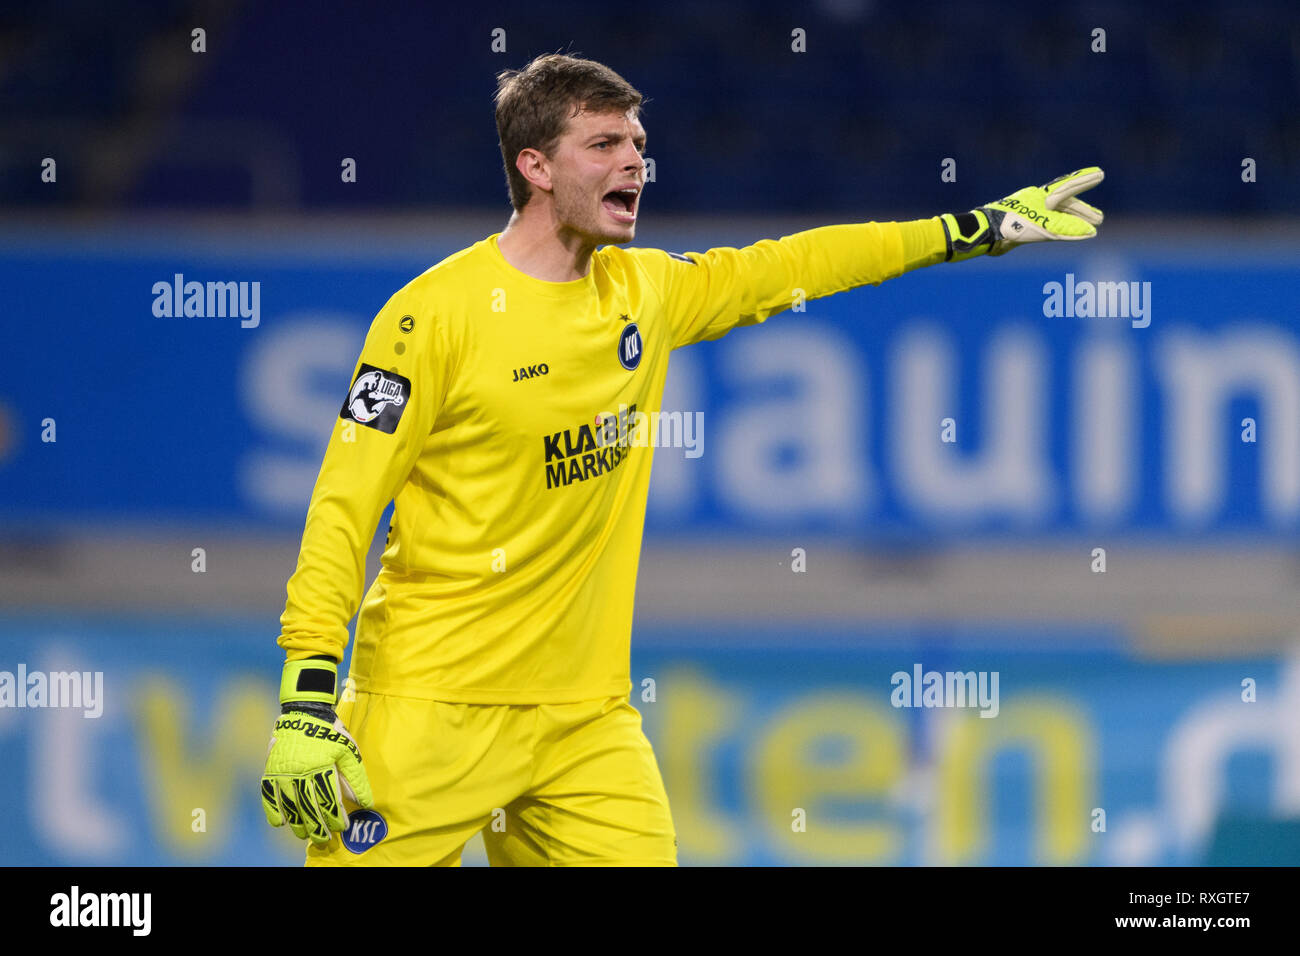 Duisburg, Deutschland. 08th Mar, 2019. goalkeeper Benjamin Uphoff (KSC). GES/football/3rd league: Krefelder football club Uerdingen - Karlsruher SC, 08.03.2019 Football/Soccer: 3rd League: KFC Uerdingen vs Karlsruher SC, Duisburg, March 8, 2019 | usage worldwide Credit: dpa/Alamy Live News - Stock Image